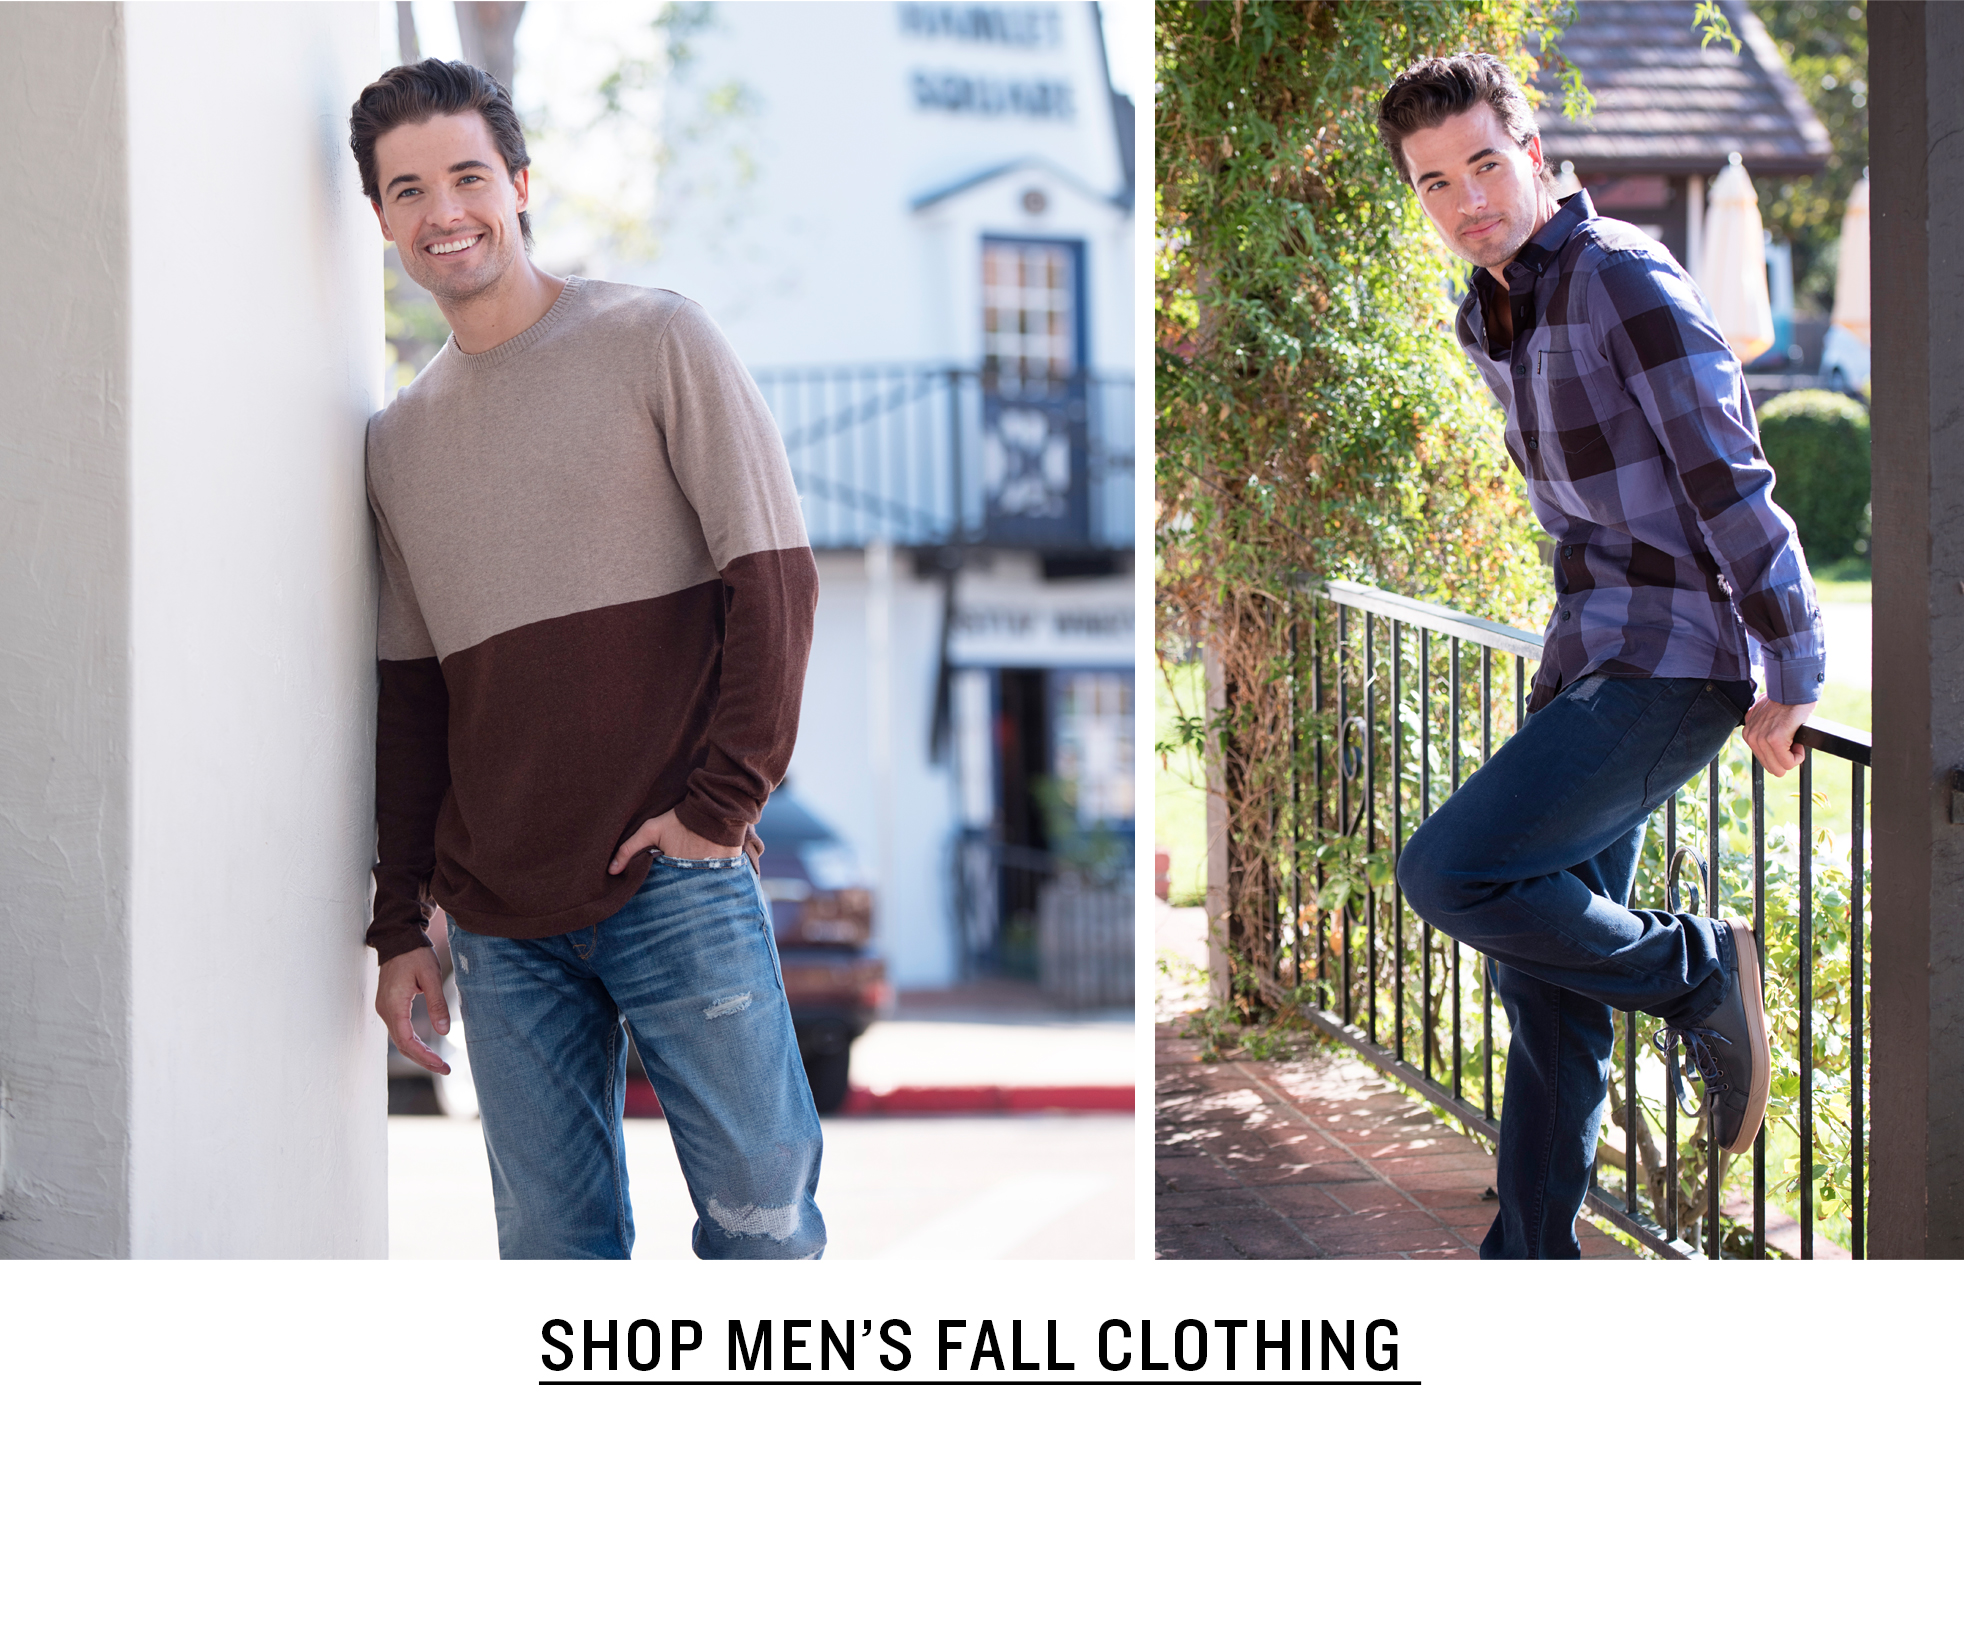 Men's Fall Clothing